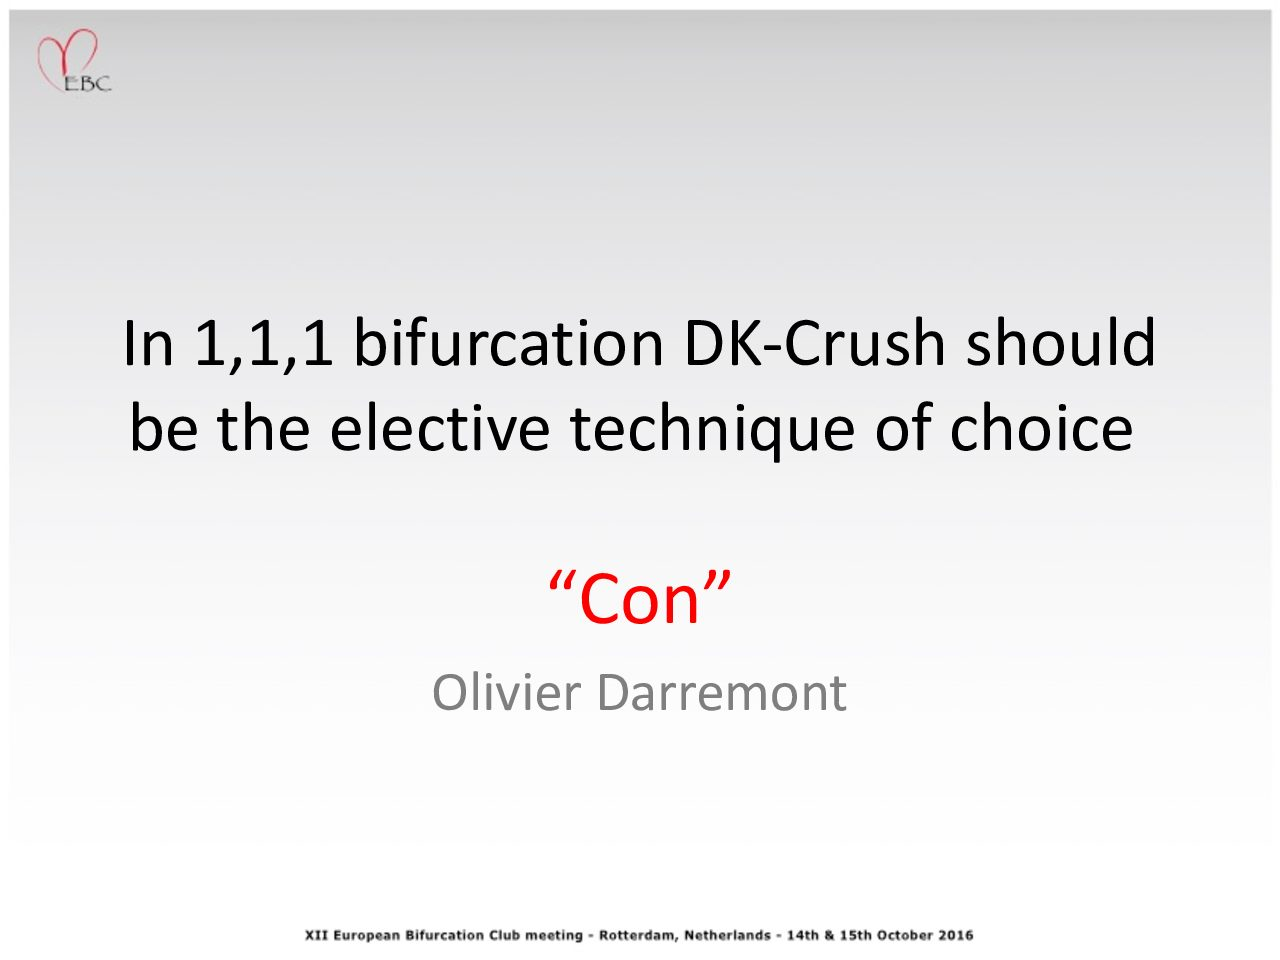 In 1,1,1 bifurcation DK-Crush should be the elective technique of choice – NO